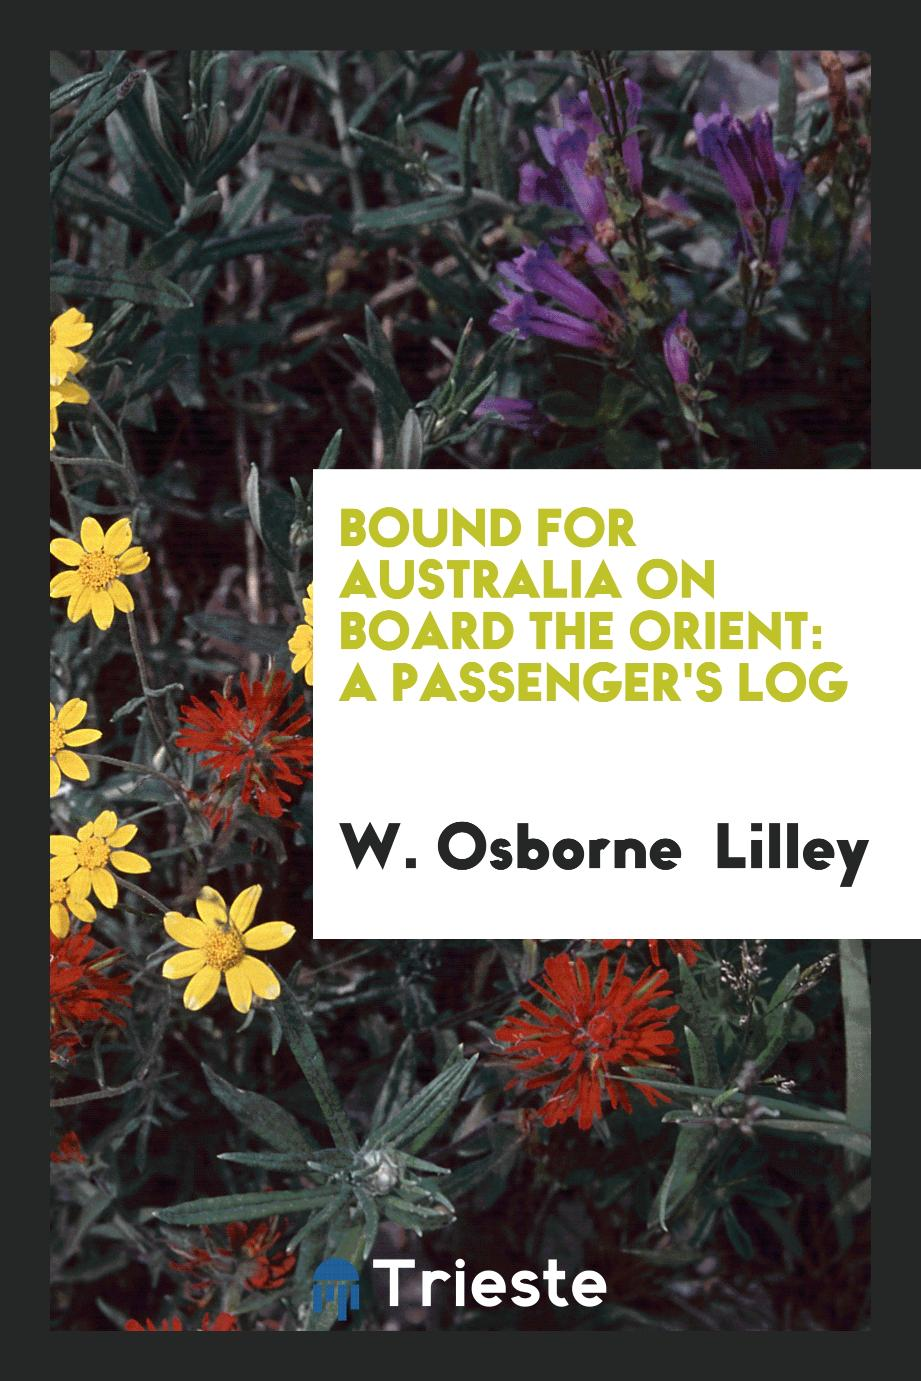 Bound for Australia on Board the Orient: A Passenger's Log